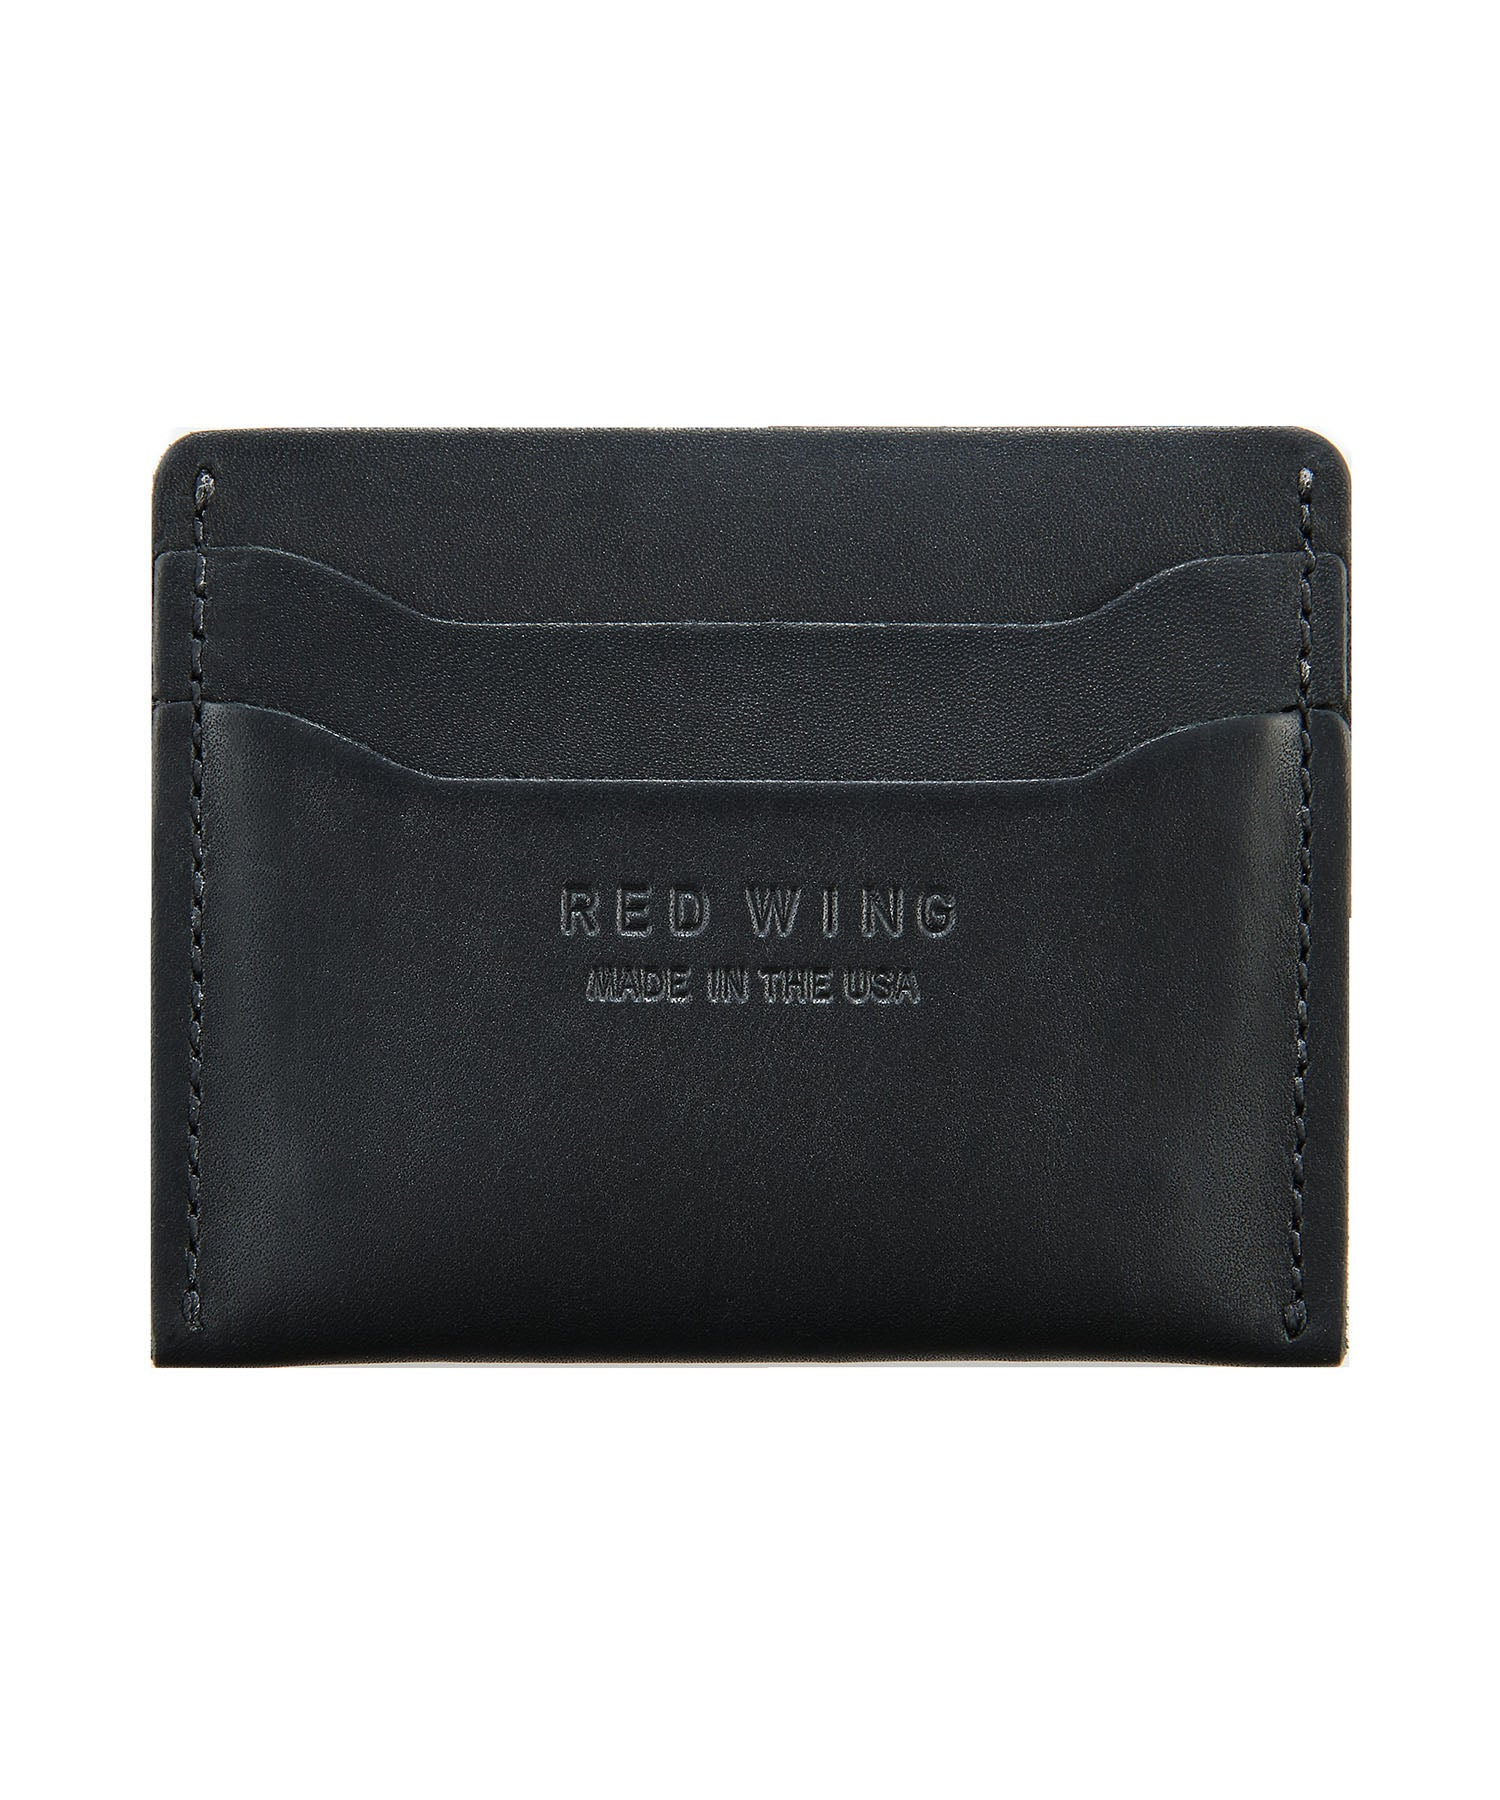 Red Wing Leather Card Colder in Black